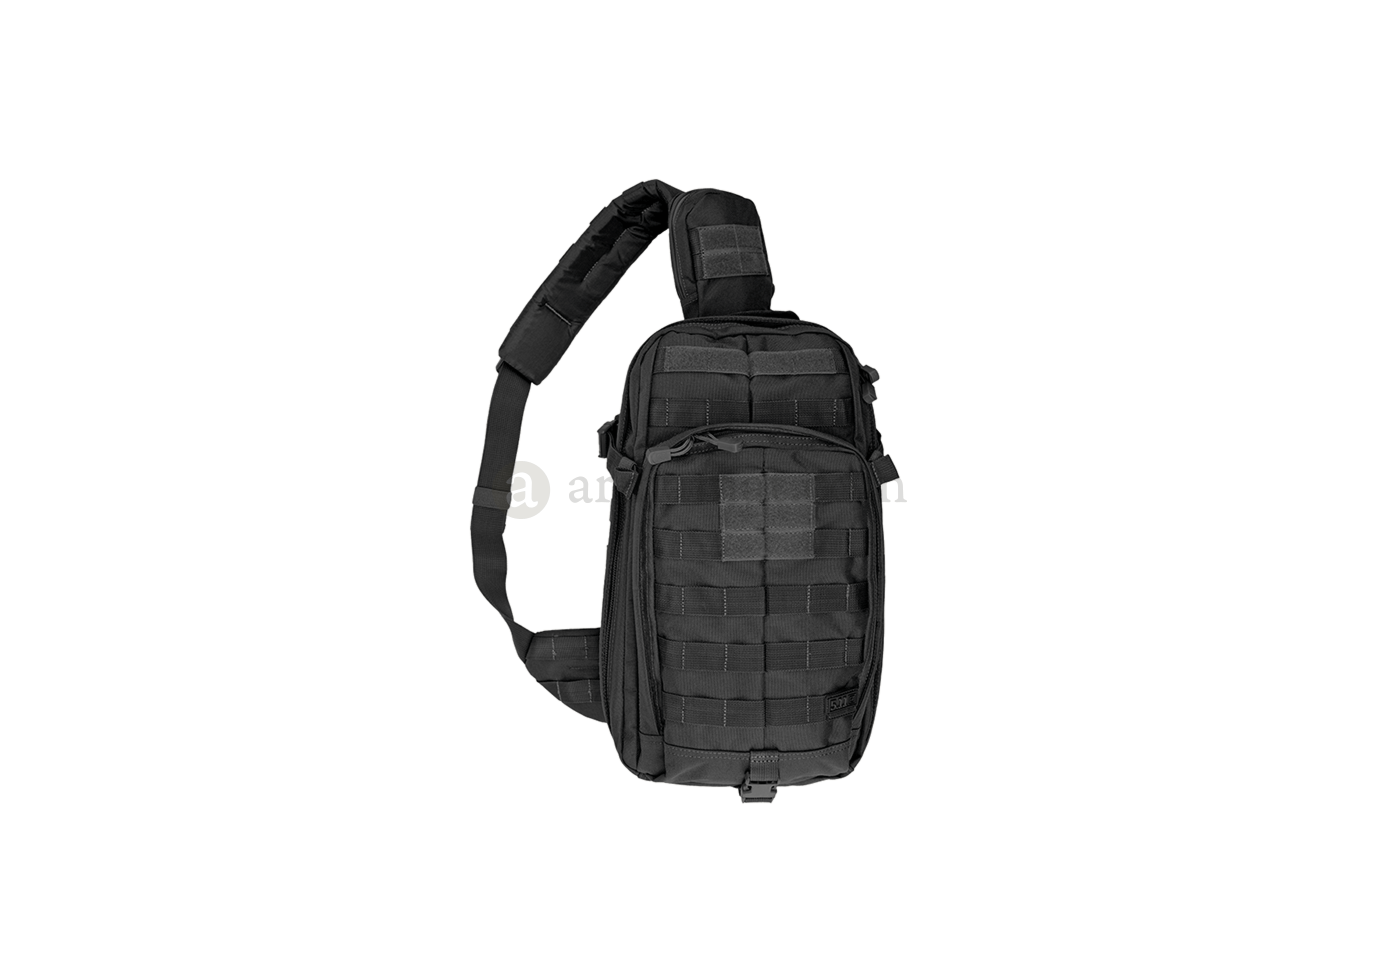 Rush Moab 10 Black 5 11 Tactical Bags Bags Cases Load